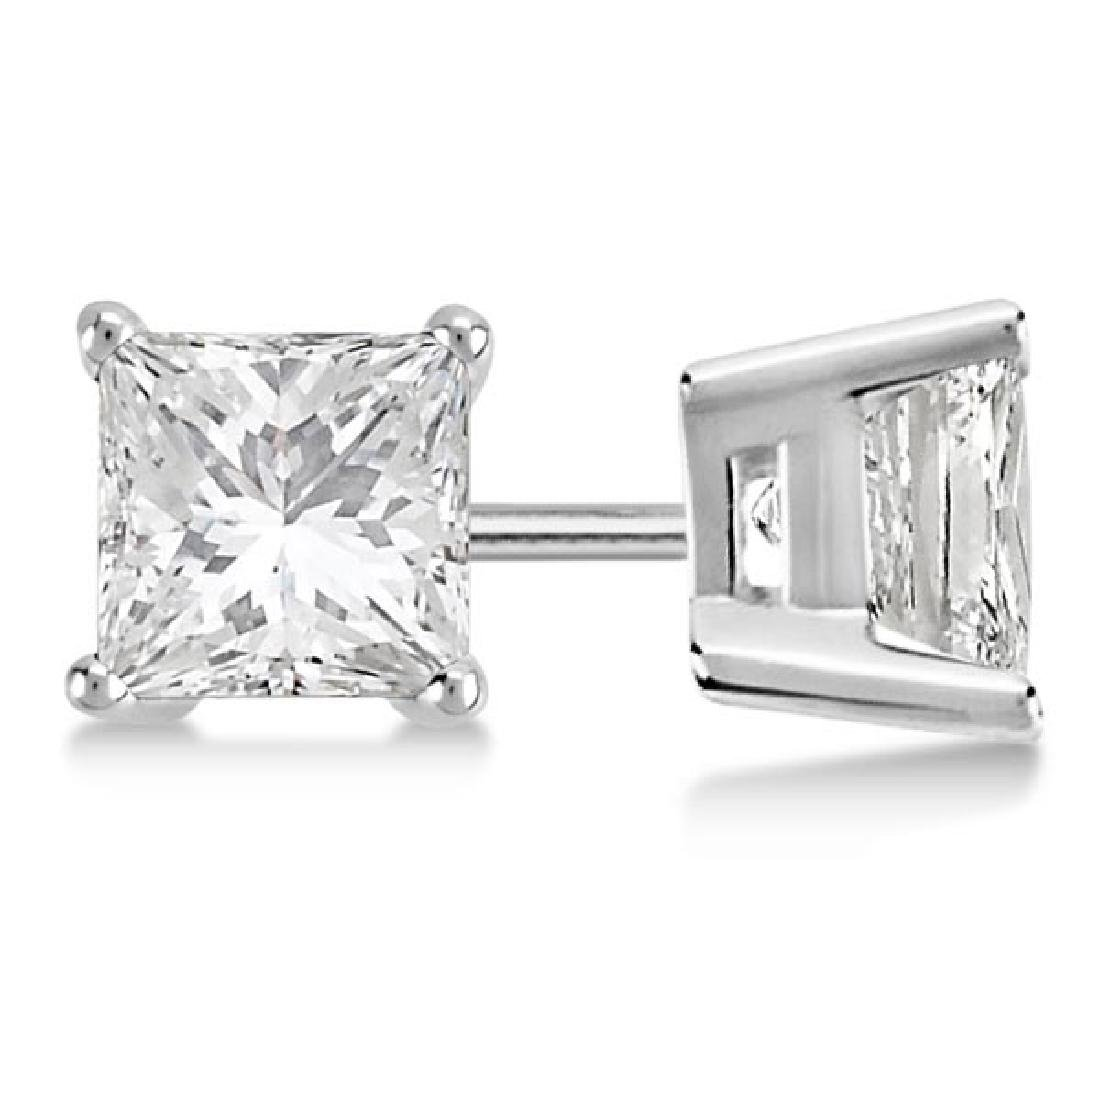 Certified 1.13 CTW Princess Diamond Stud Earrings H/SI2